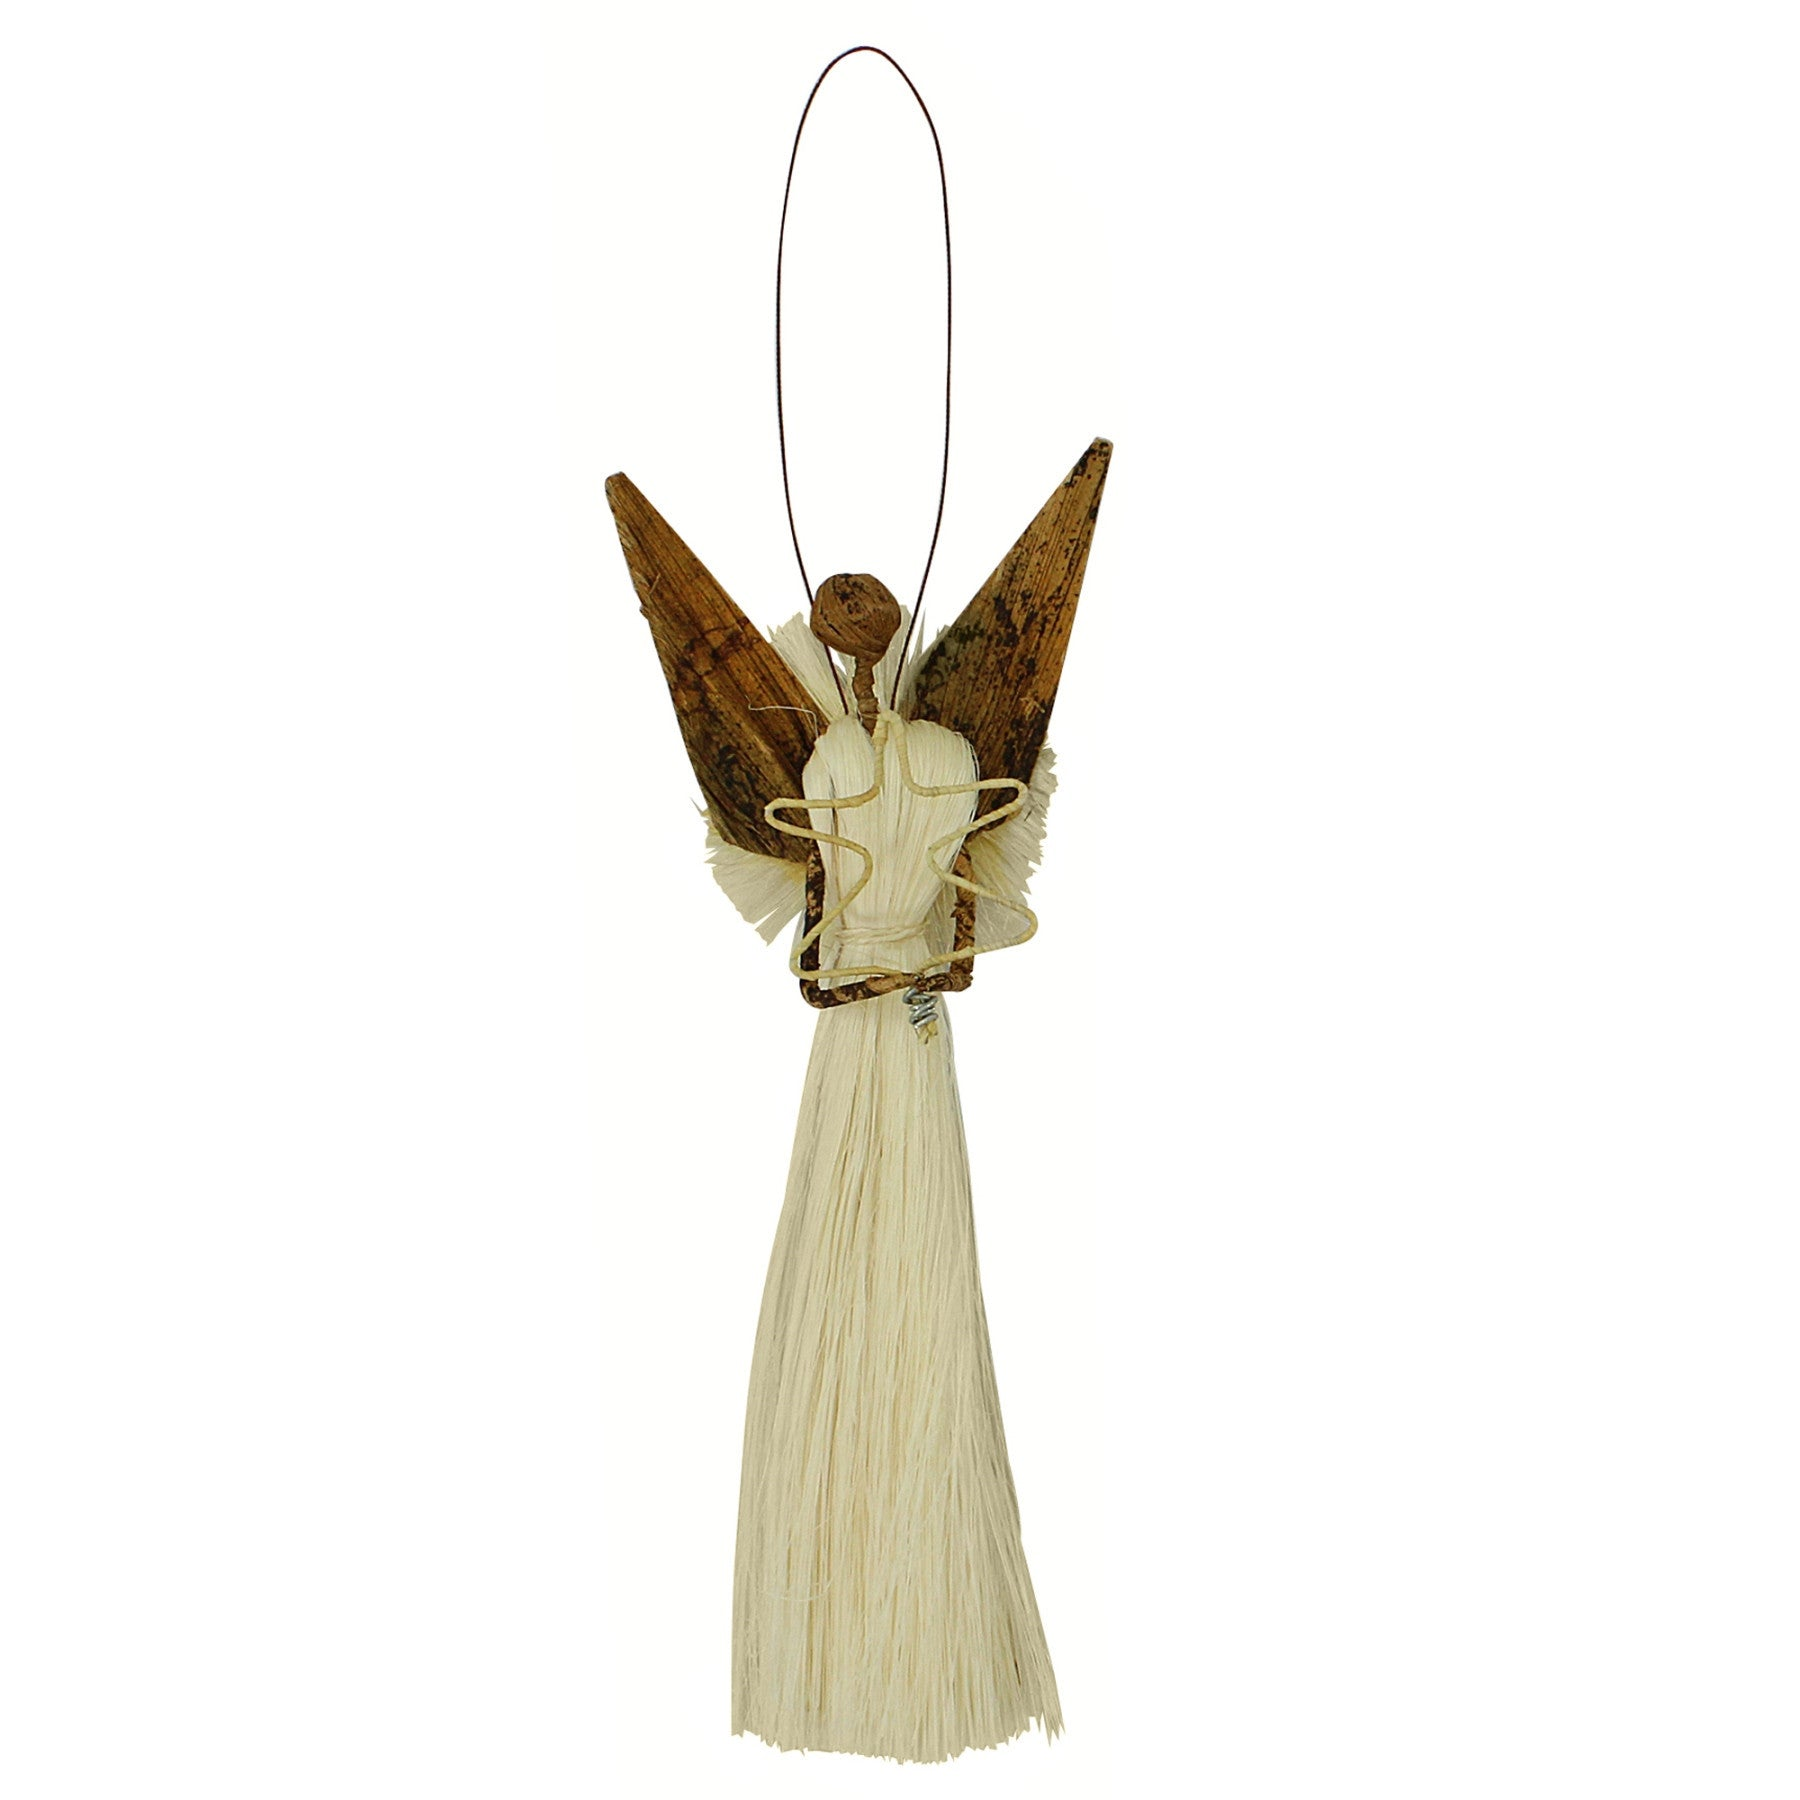 Kenyan Banana Fiber and Sisal Angel Christmas Ornament (Christmas Tree)